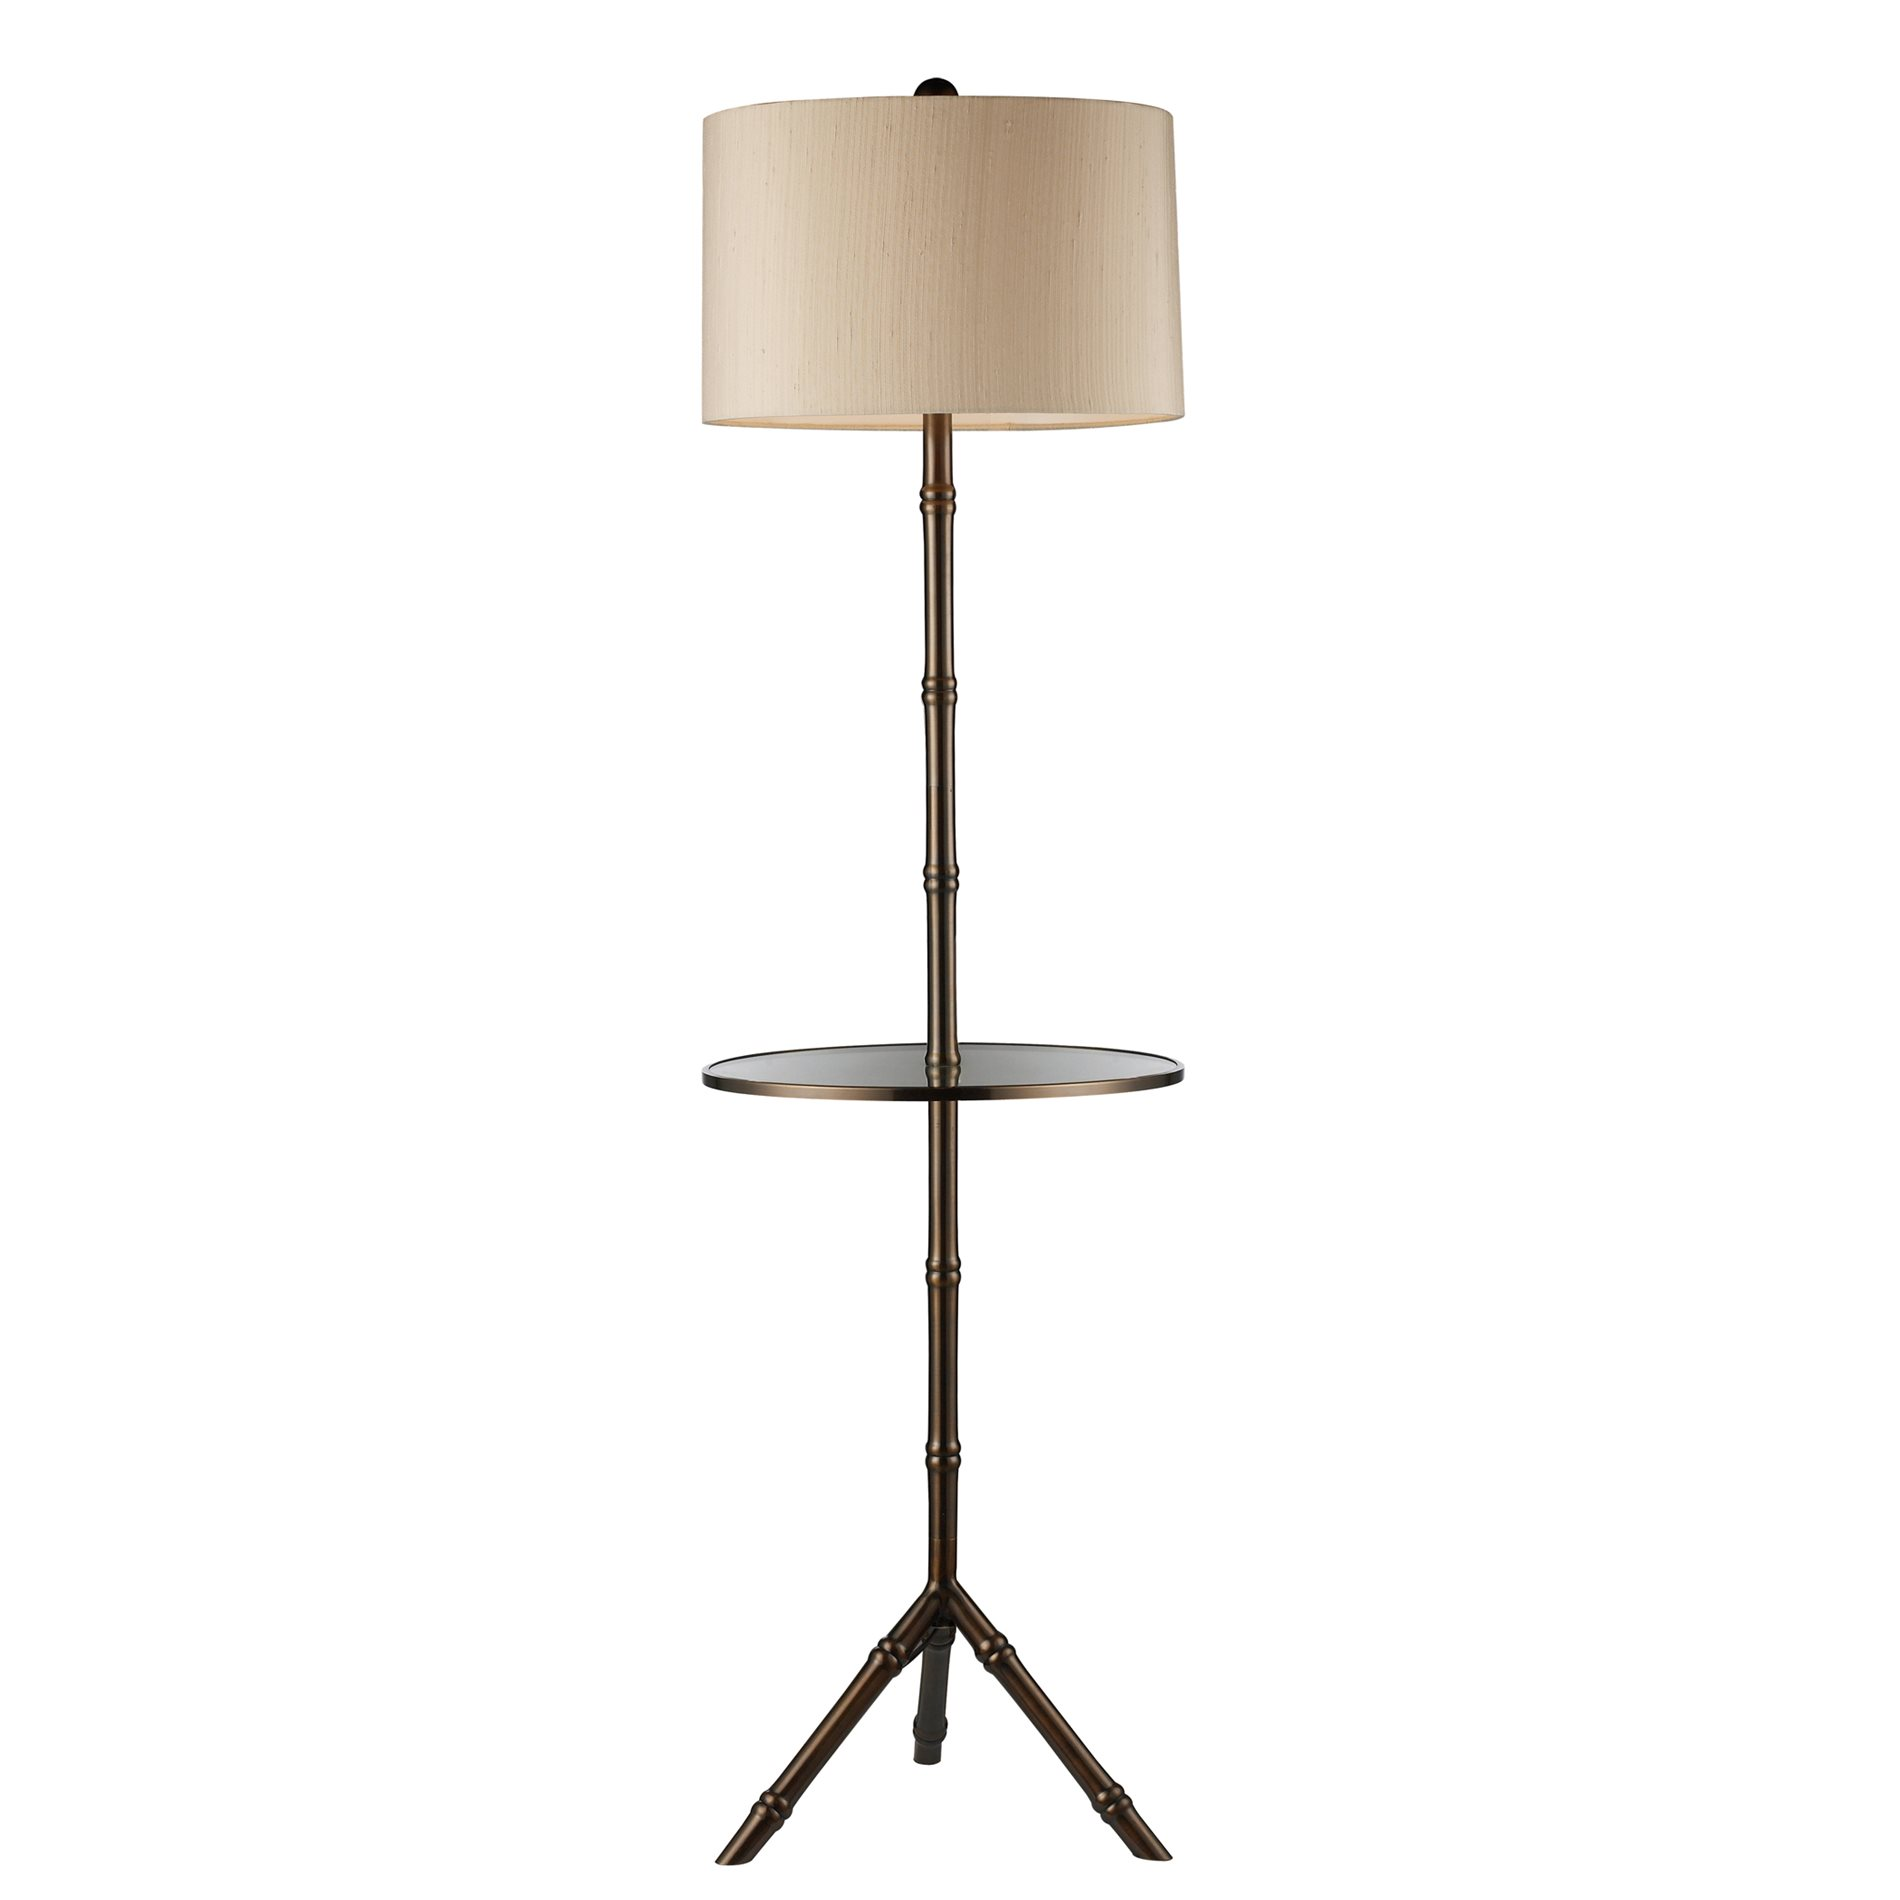 dimond d1403d stanton transitional floor lamp with glass